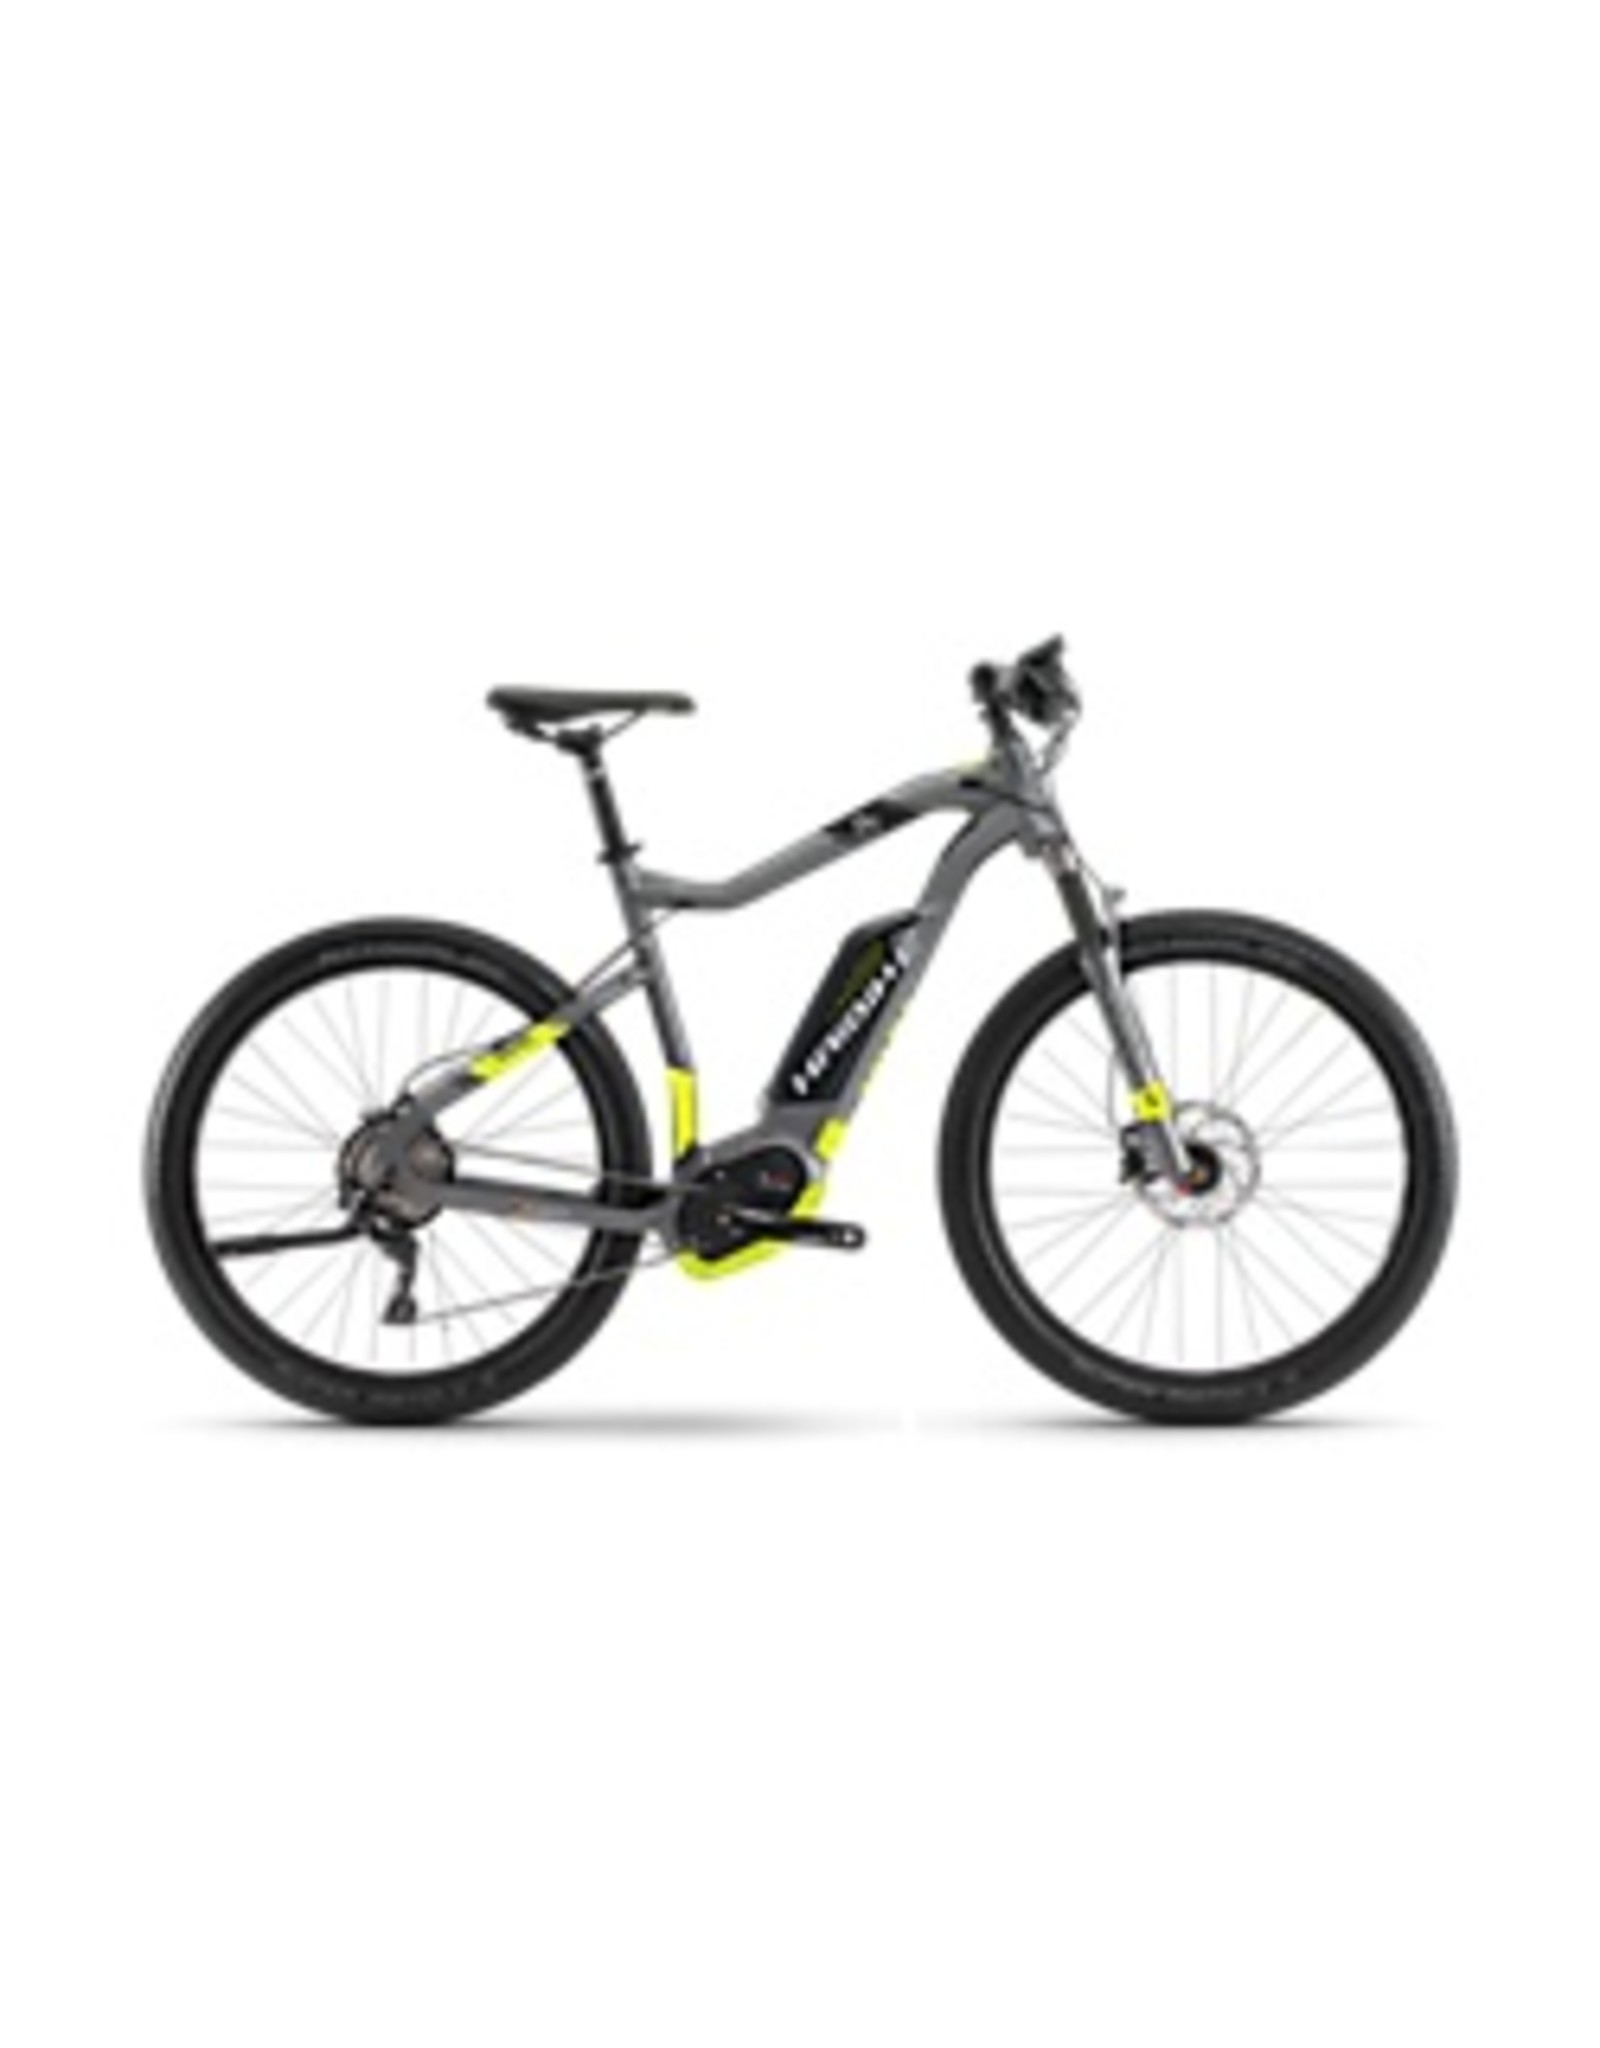 Haibike SD CROSS HISTP 95 48 GRY